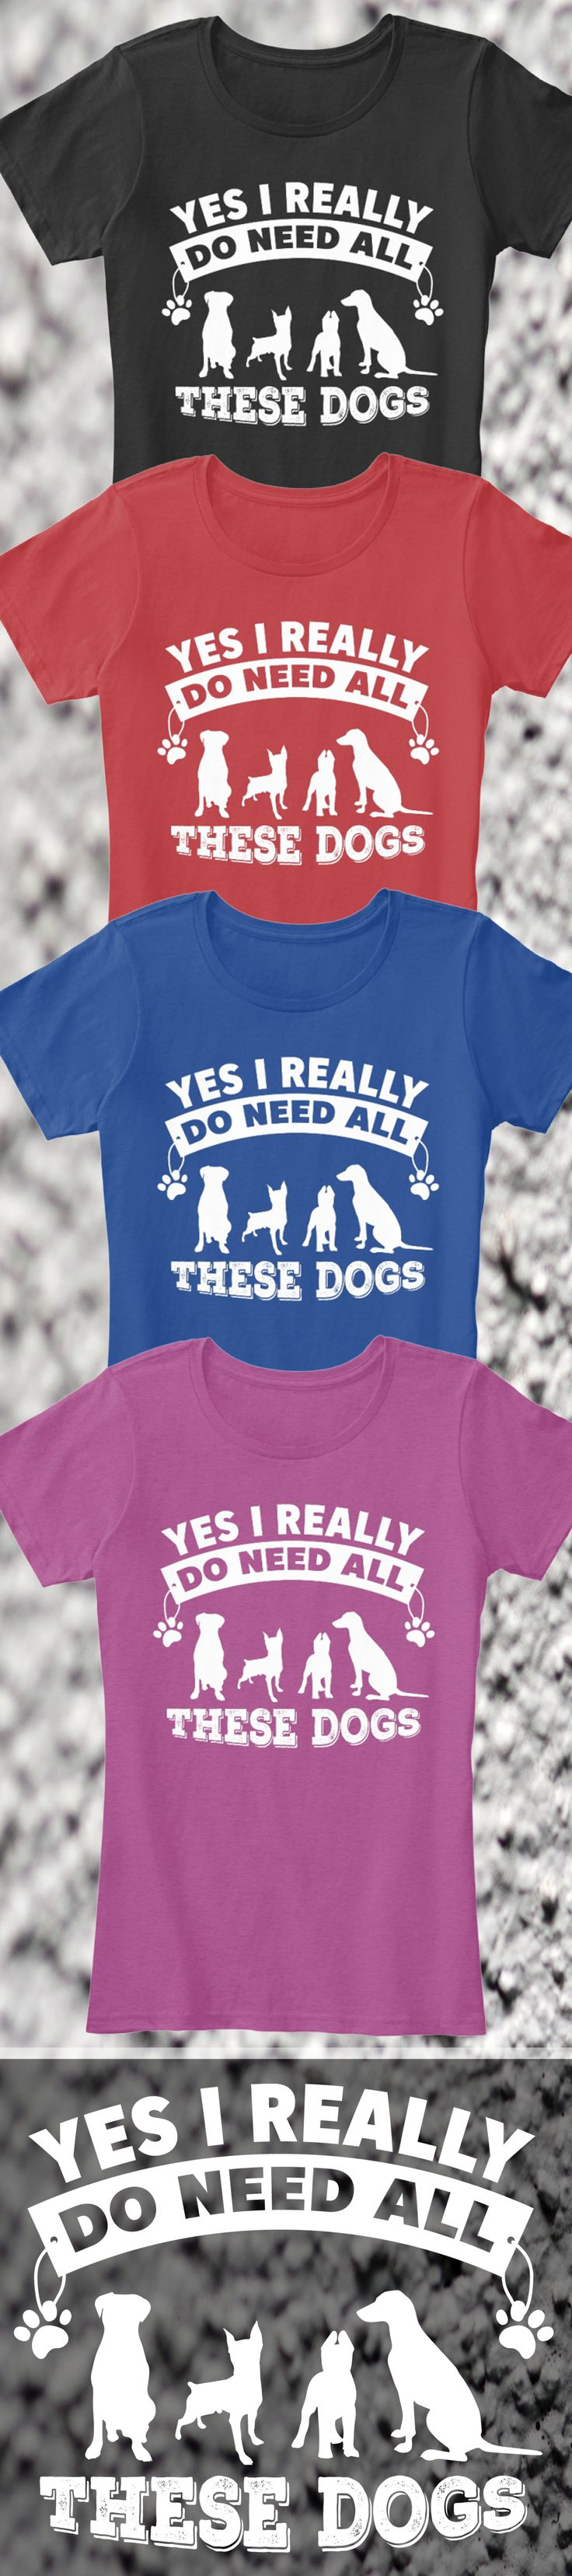 Do you love dogs?! Check out this awesome Yes I Do Need All The Dog t-shirt you will not find anywhere else. Not sold in stores and only 2 days left for free shipping! Grab yours or gift it to a friend, you will both love it